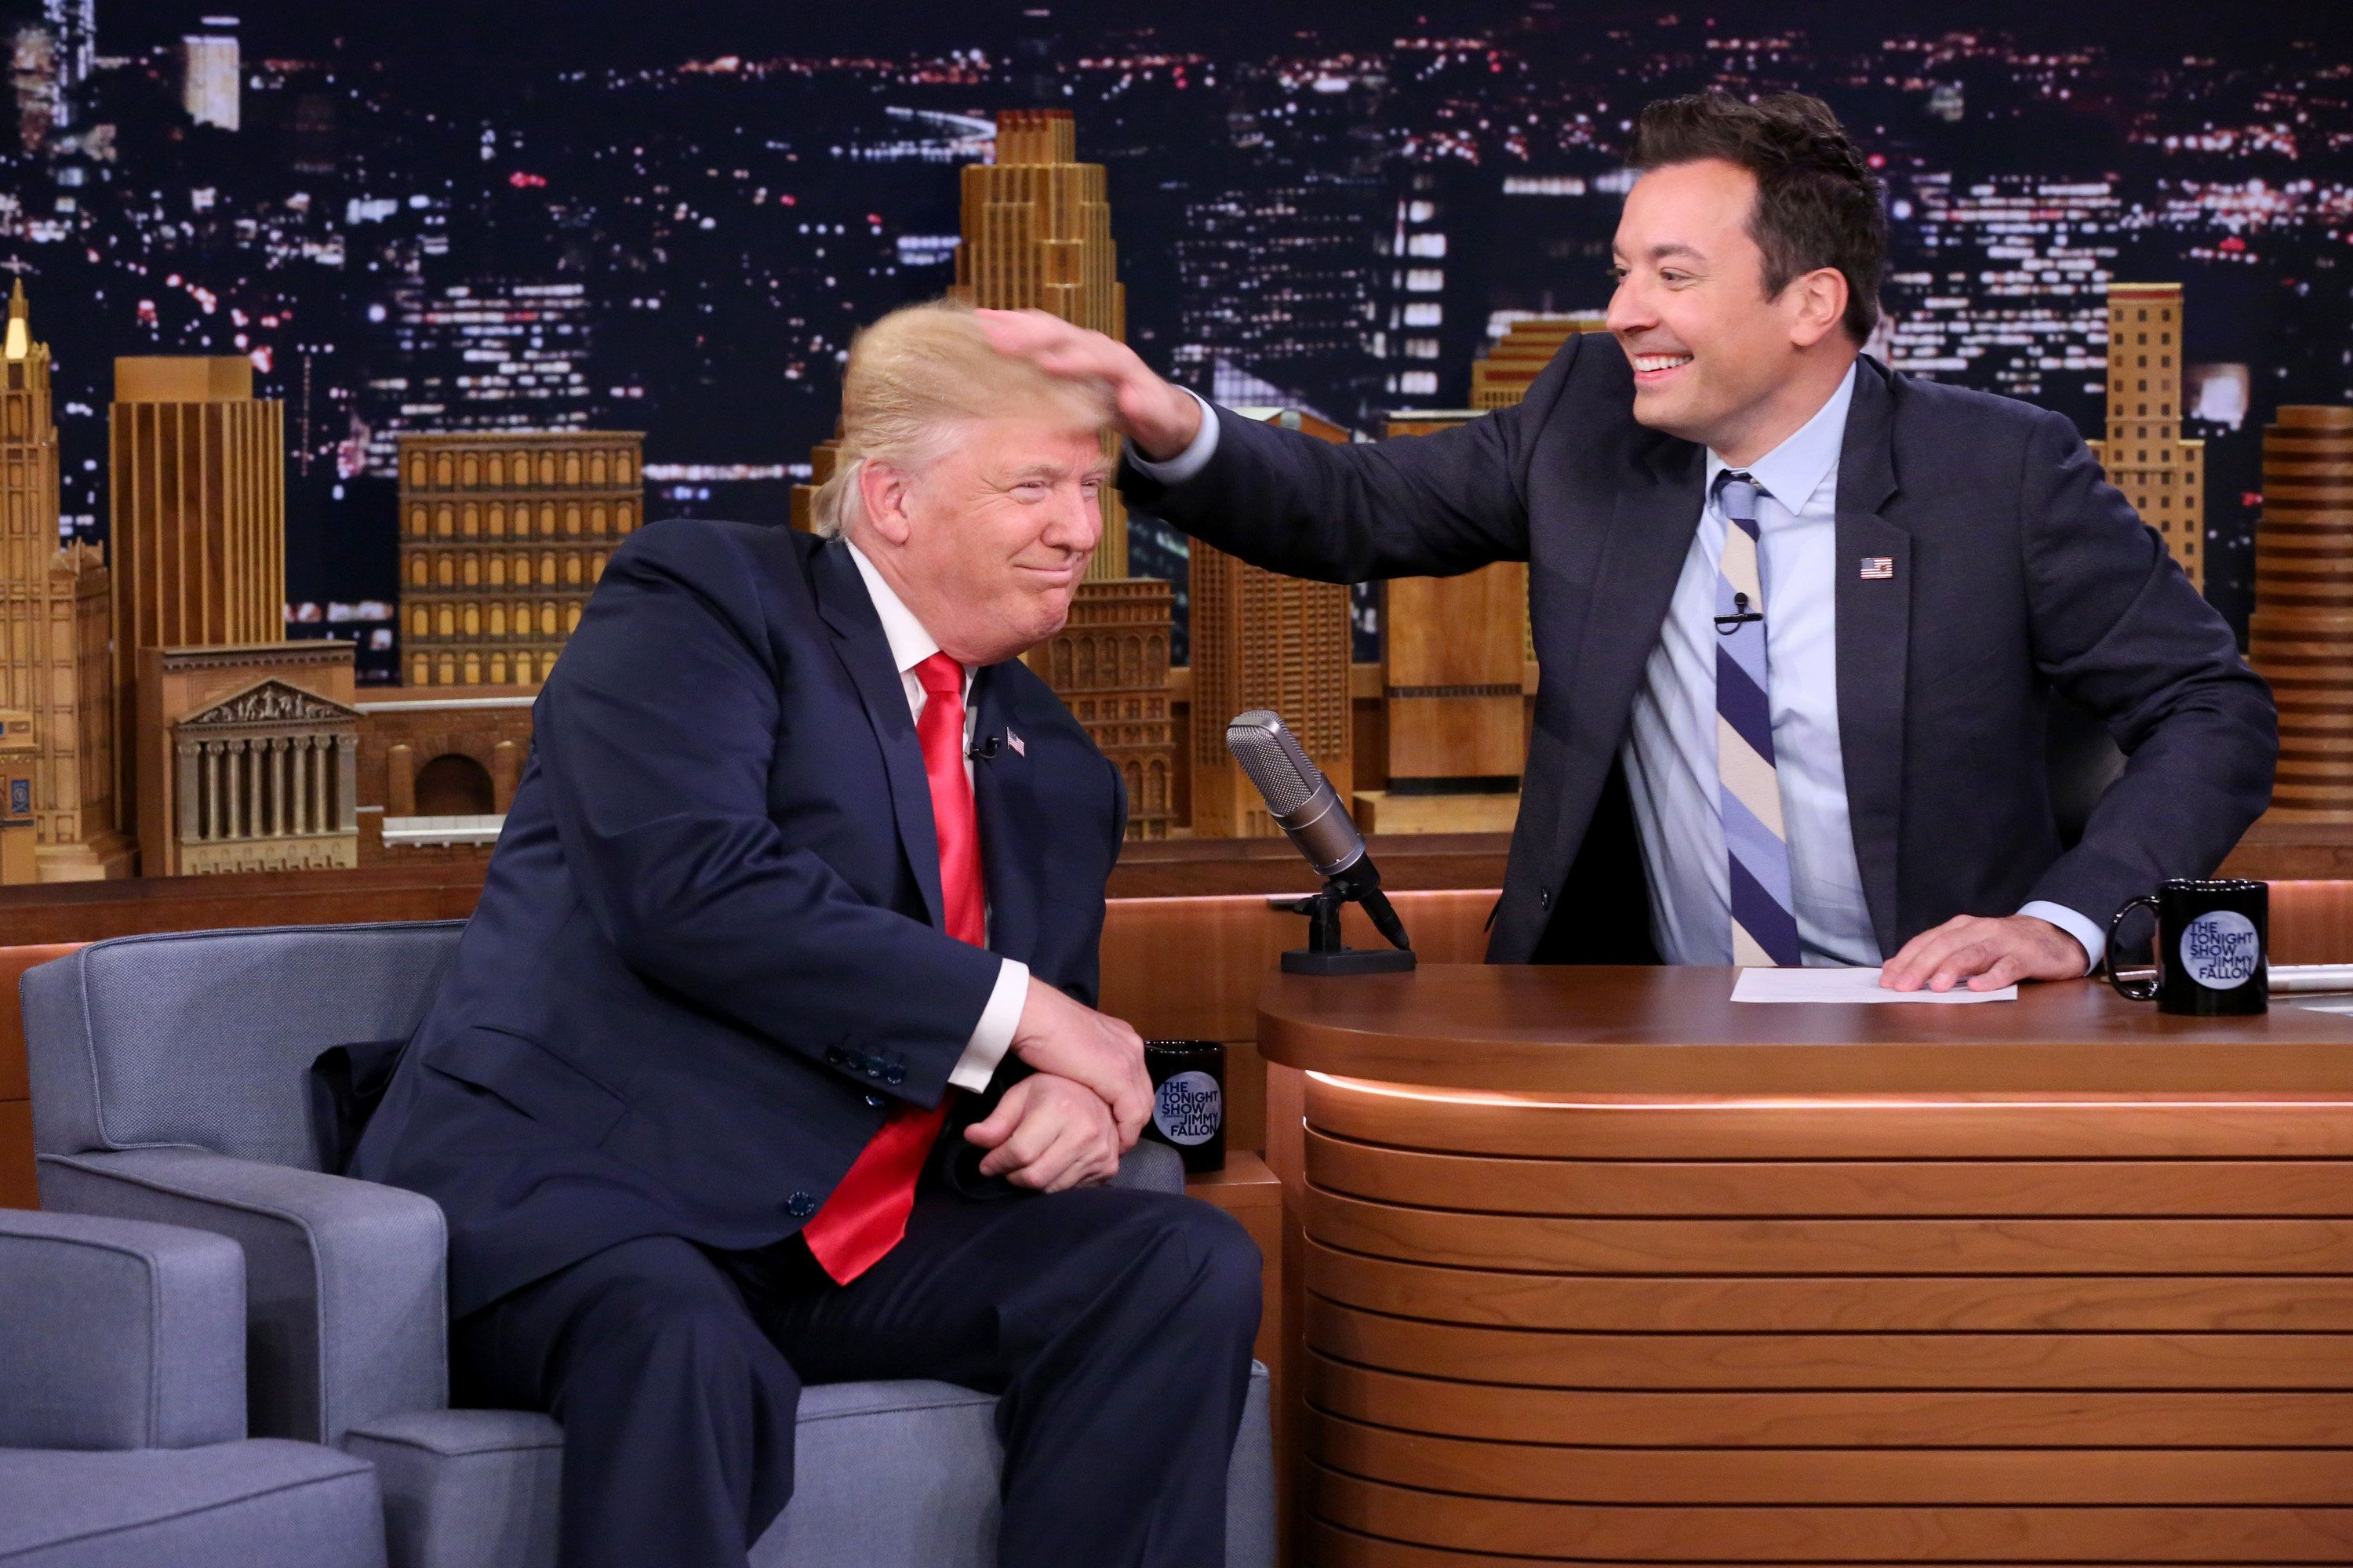 Republican Presidential Nominee Donald Trump gets a head rub during an interview with Jimmy Fallon on Sept. 15, 201